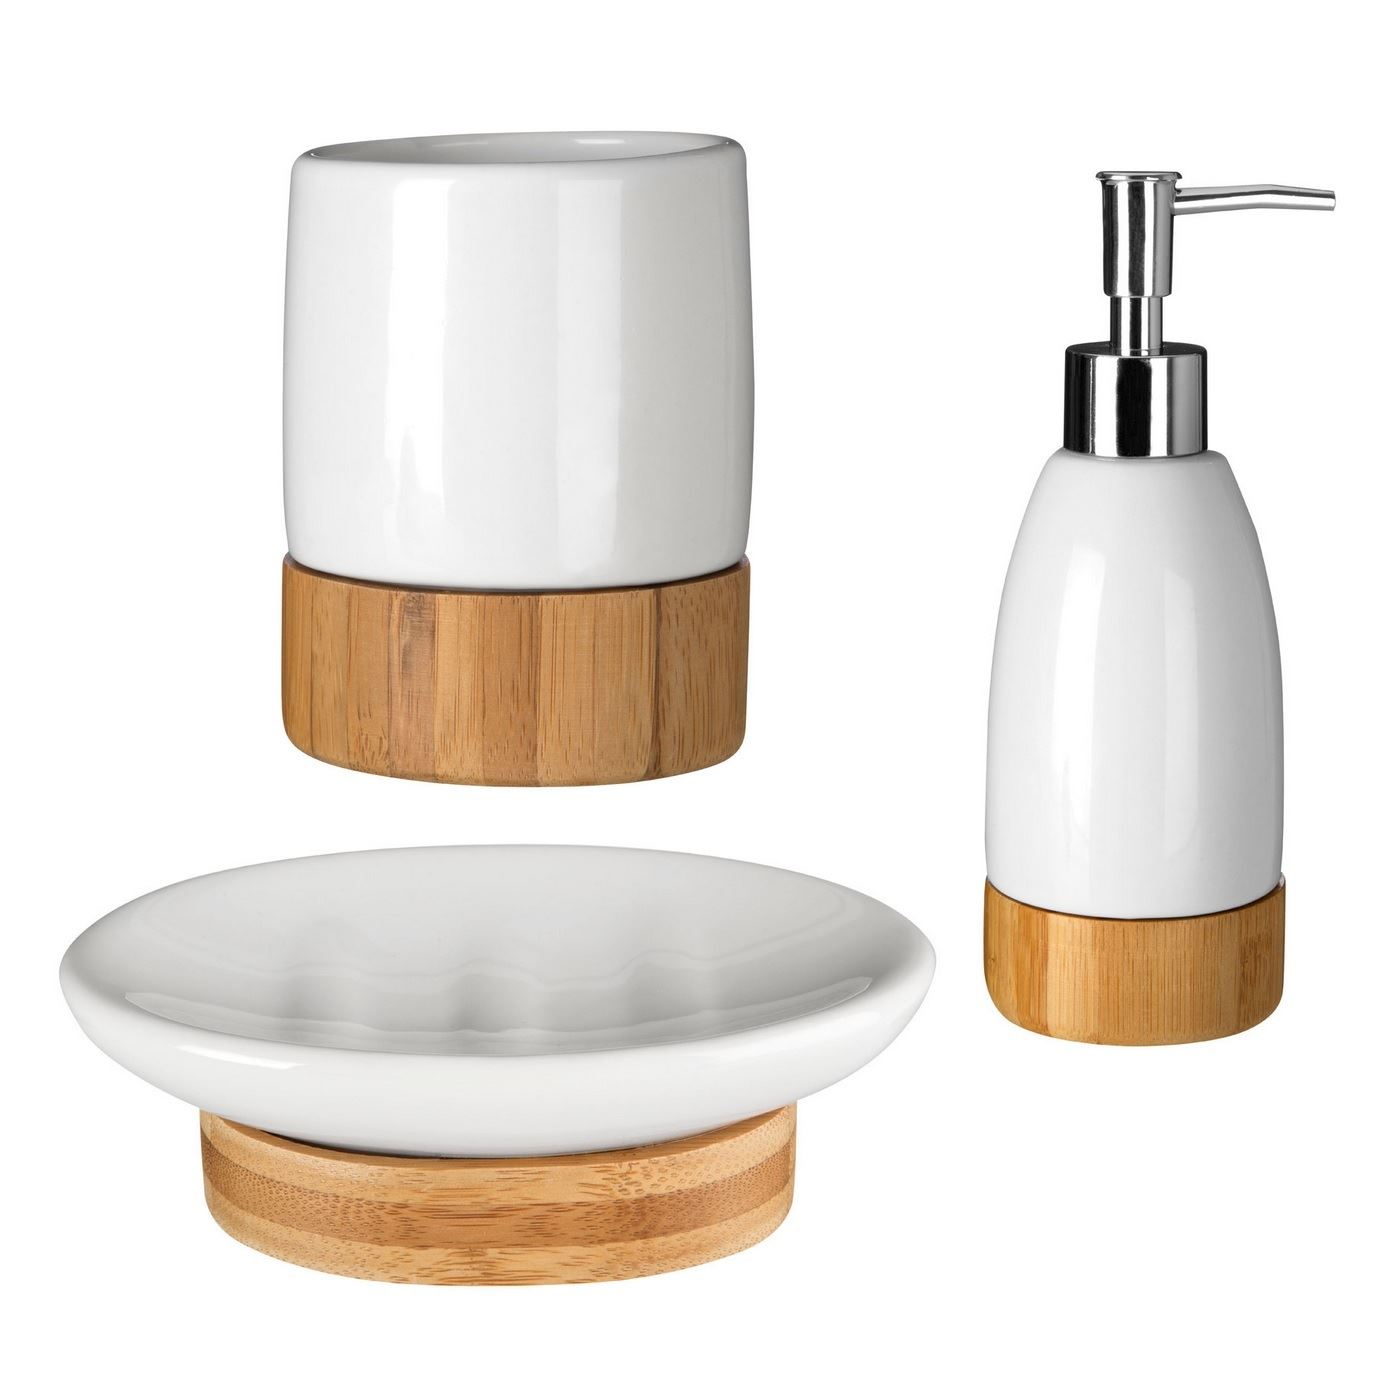 Earth white dolomite wooden bamboo base bathroom for White bathroom accessories set